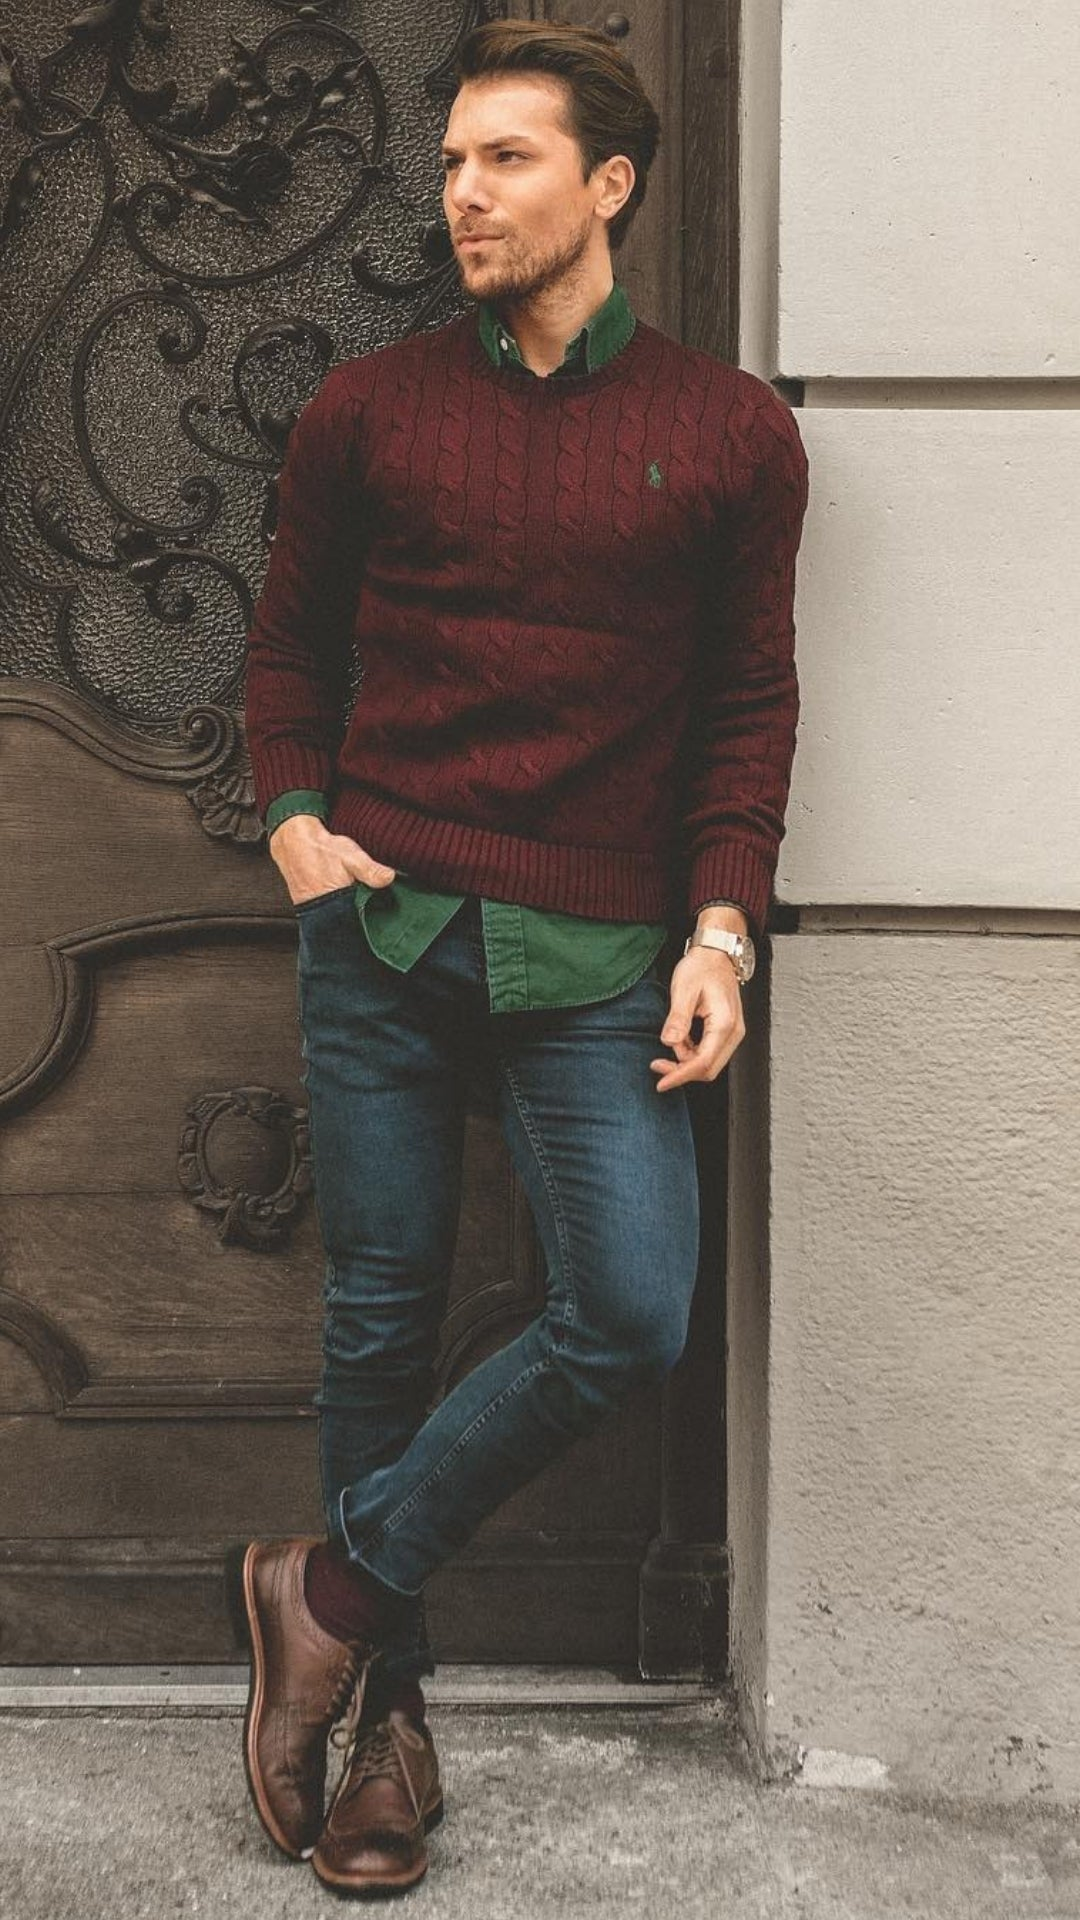 Cool sweater outfits for men #mensfashion #sweater #outfits #streetstyle